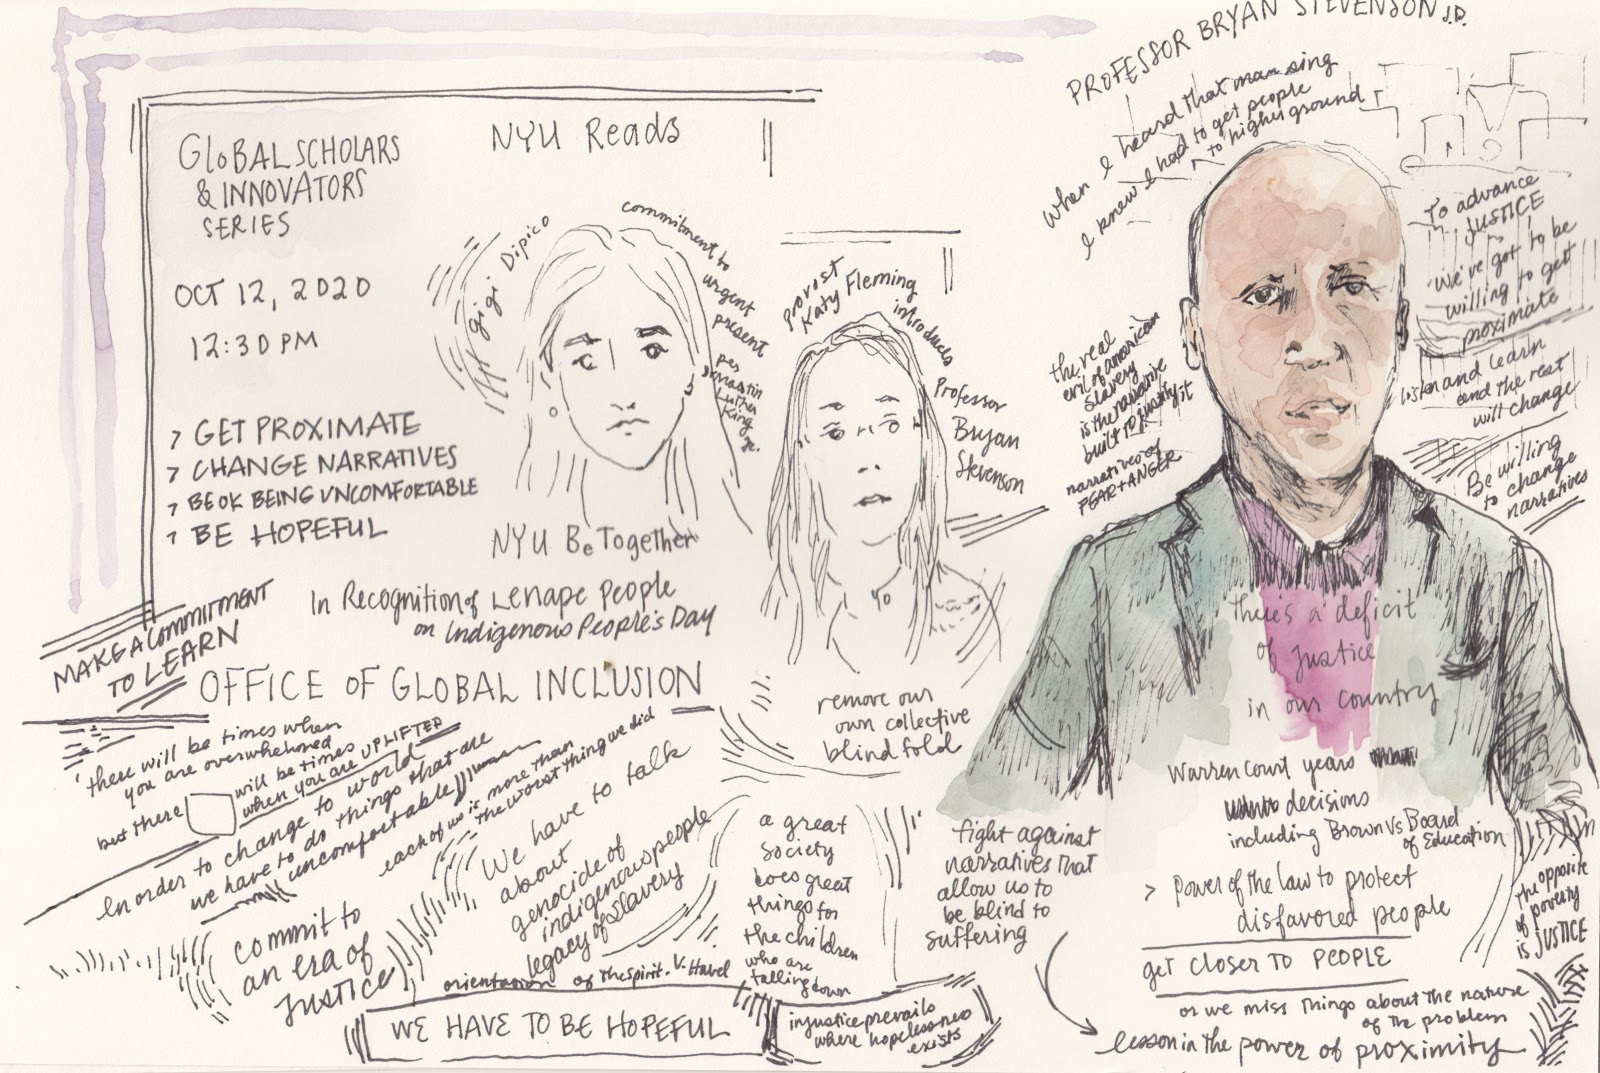 Photo of Professor Bryan Stevenson surrounded by notes with two other faces sketched in pencil